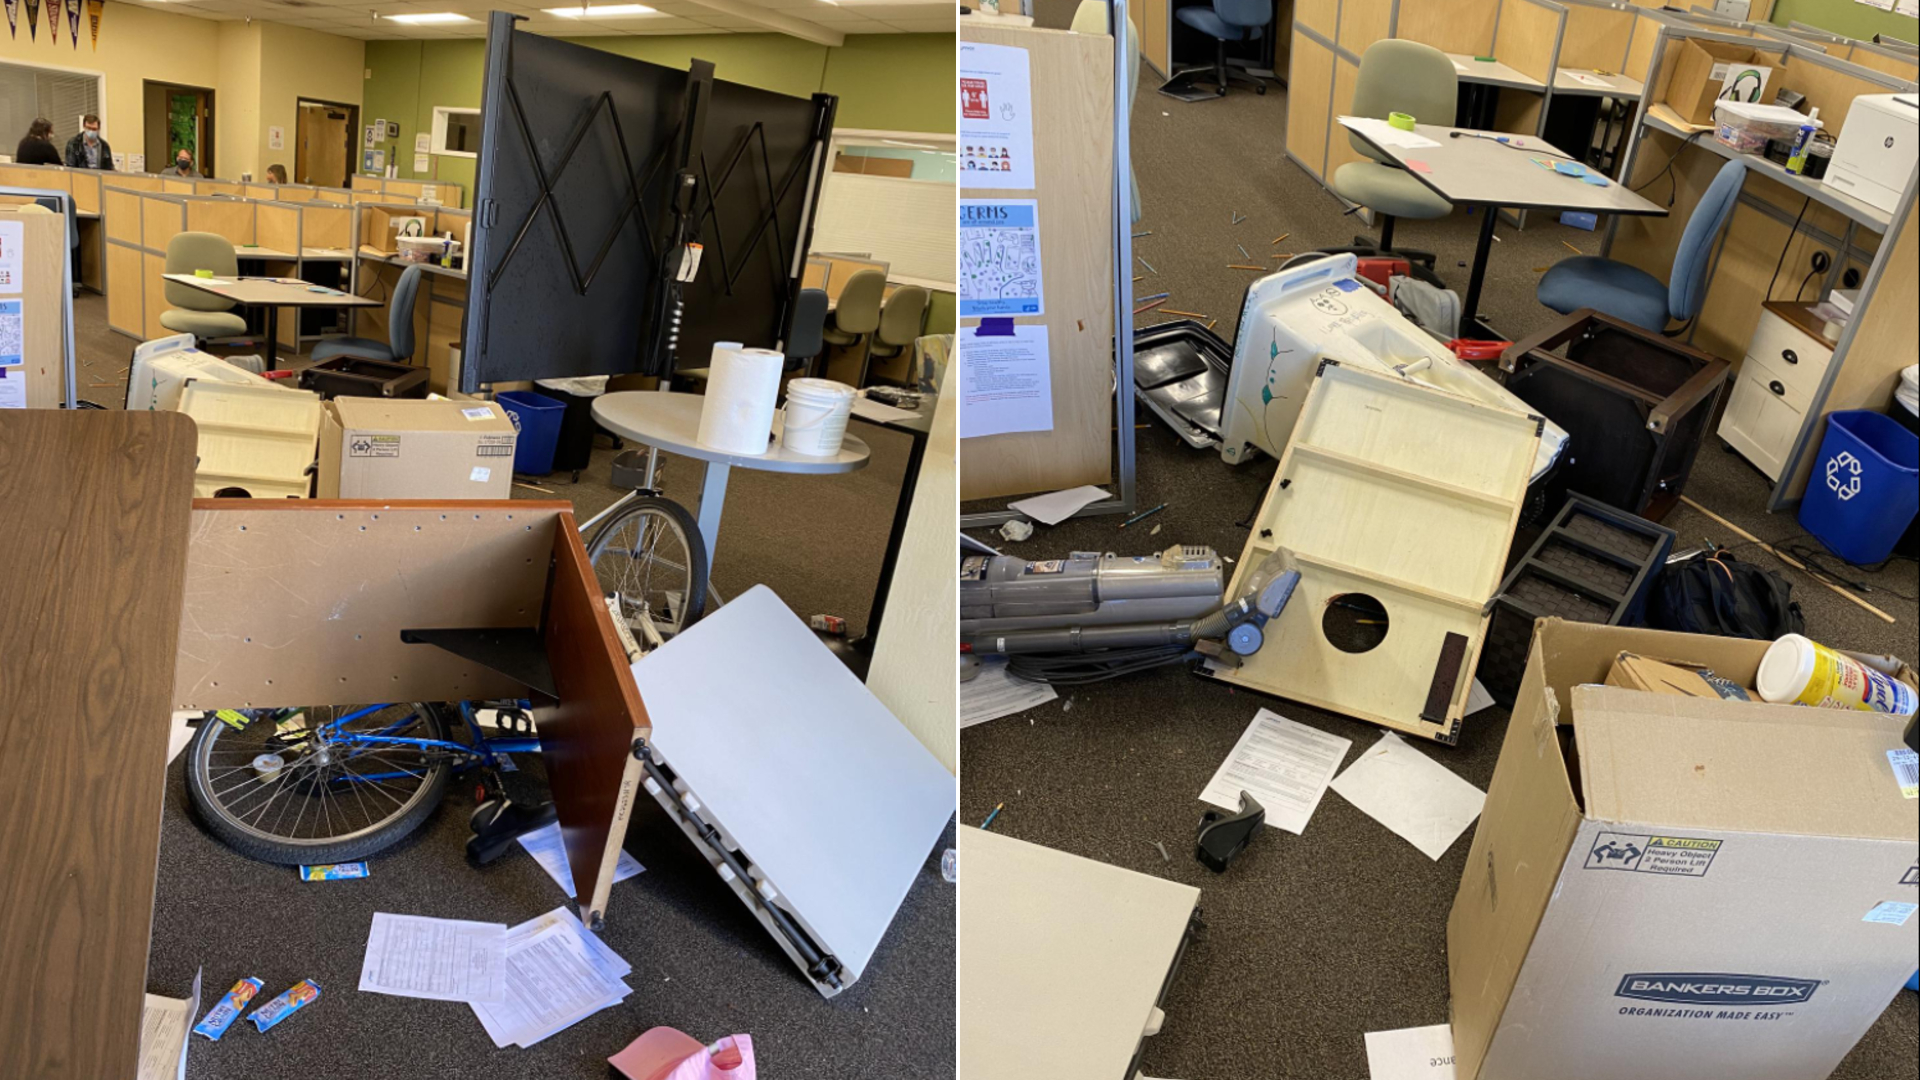 Destruction left by a woman who allegedly ran inside a Santa Rosa classroom and assaulted three people on May 19, 2021, in photos released by the Santa Rosa Police Department.